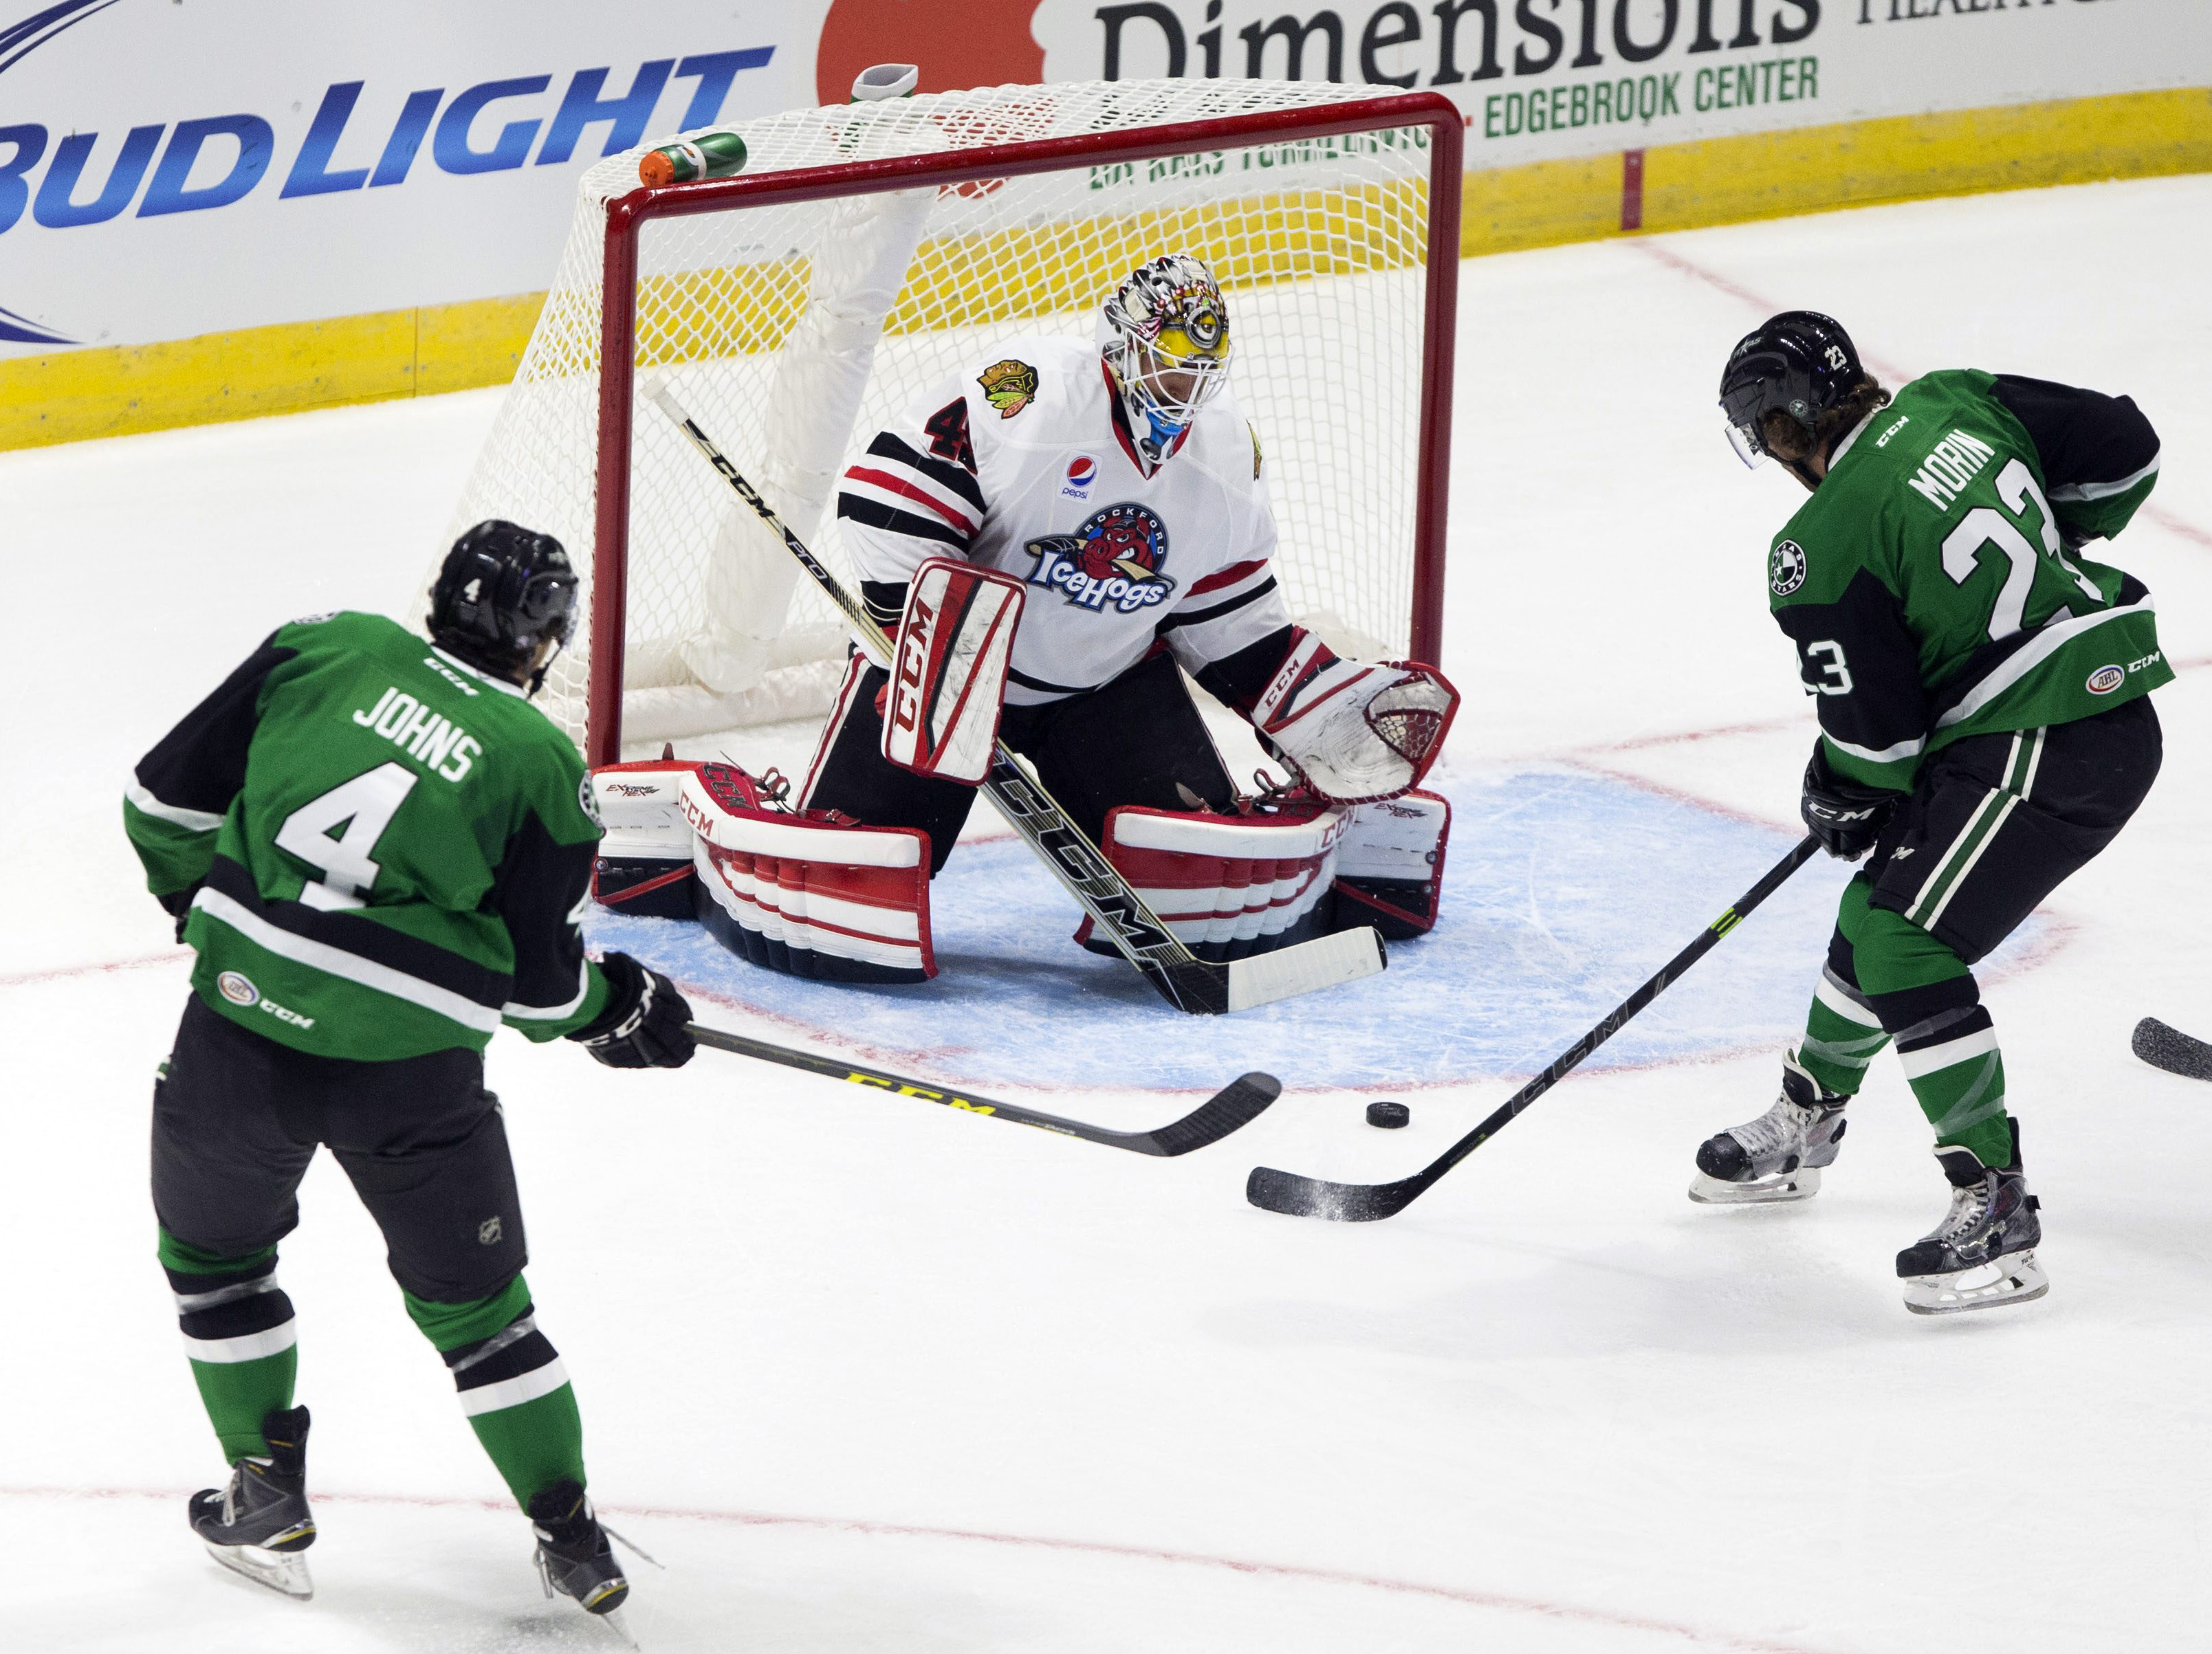 In this photo taken Oct. 17, 2015, Rockford IceHogs goalie Michael Leighton, center, defends the net against the Texas Stars during an AHL hockey game at BMO Harris Bank Center in Rockford, Ill. Leighton is on the verge of breaking the all-time American H